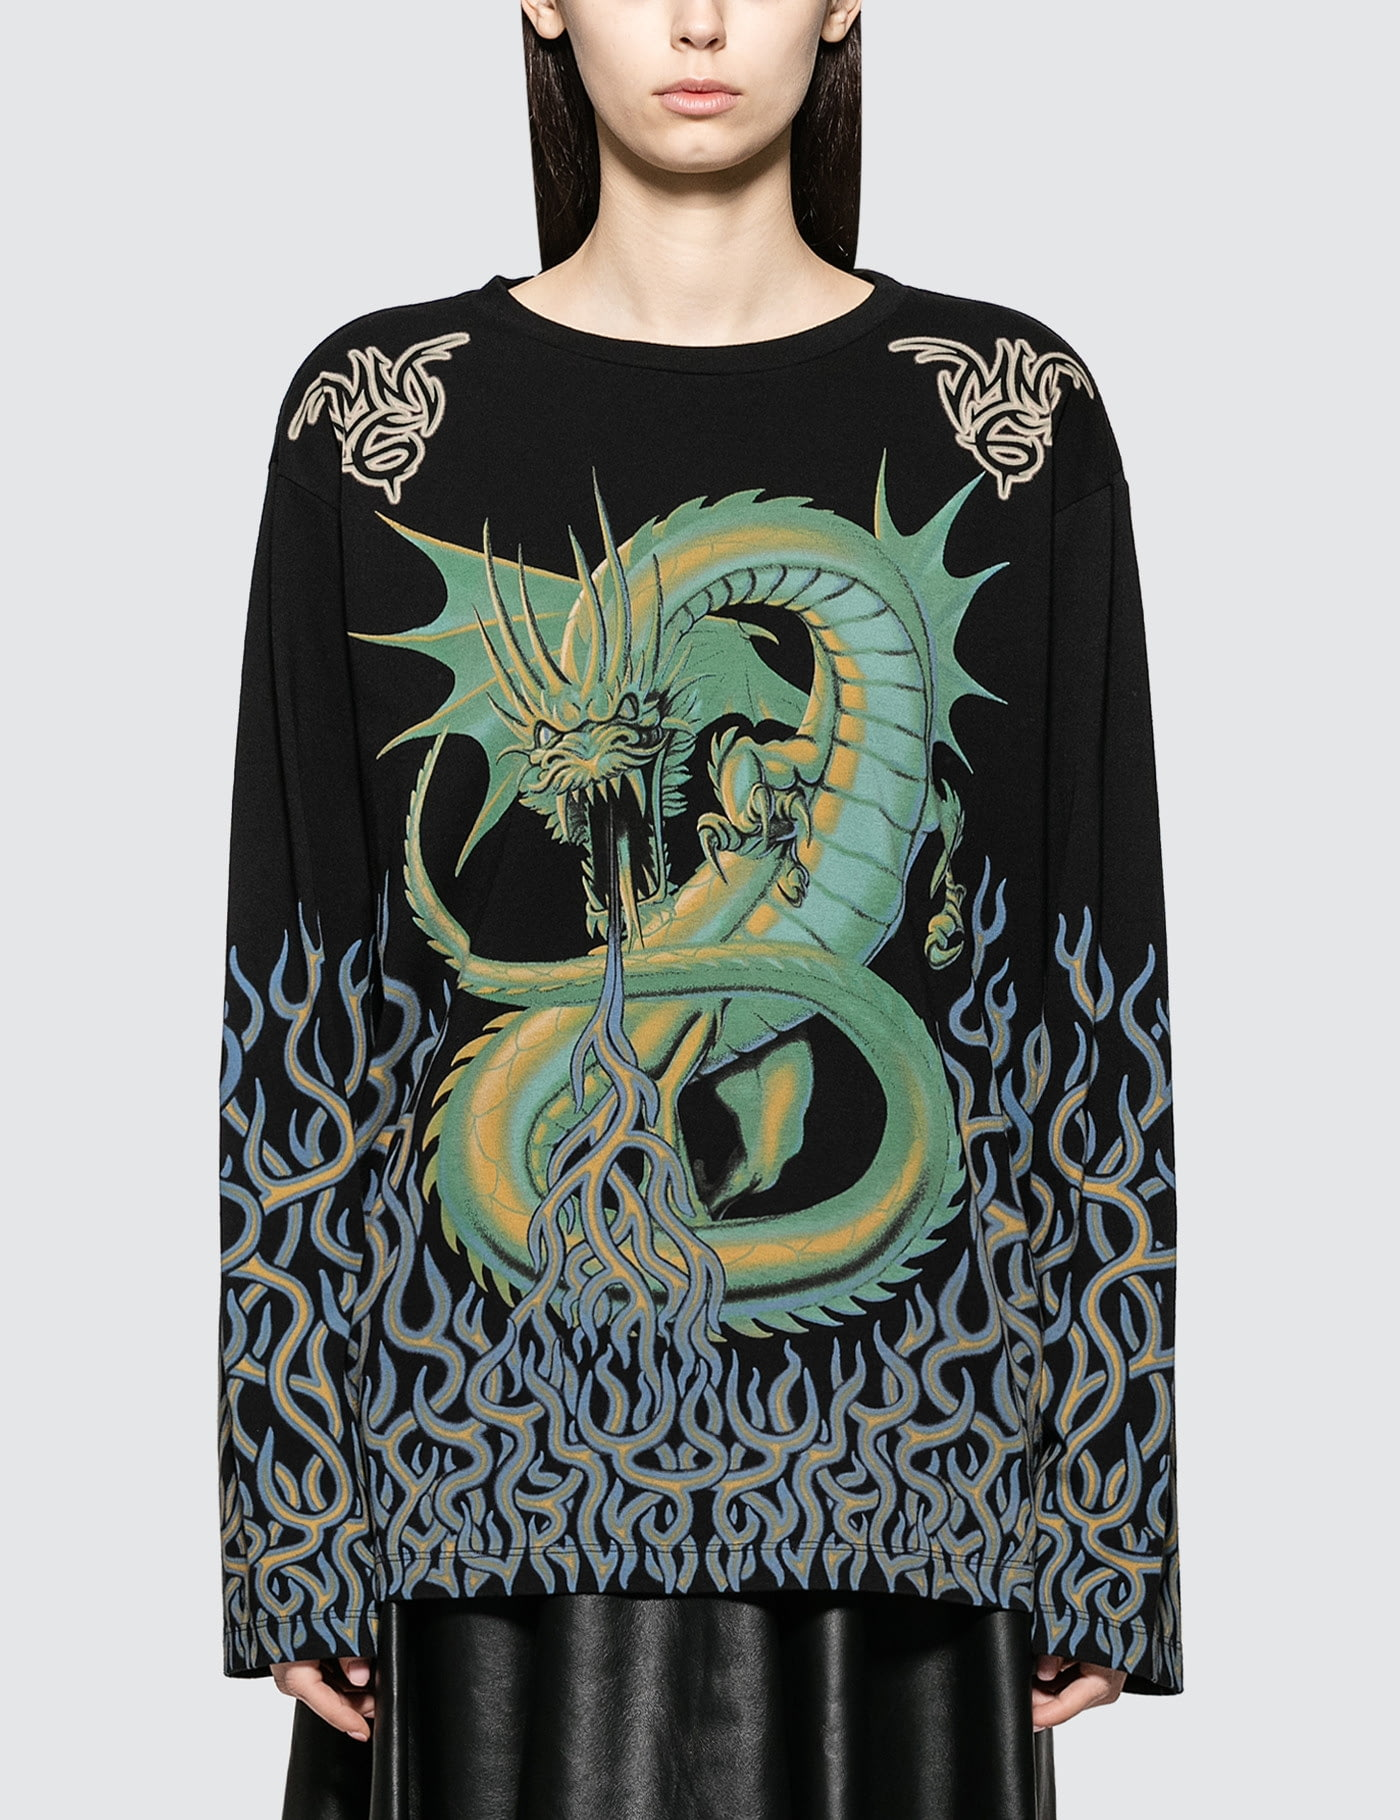 ca7ddbad6 Buy Original MM6 Maison Margiela Printed Oversized Long Sleeve T-Shirt at  Indonesia